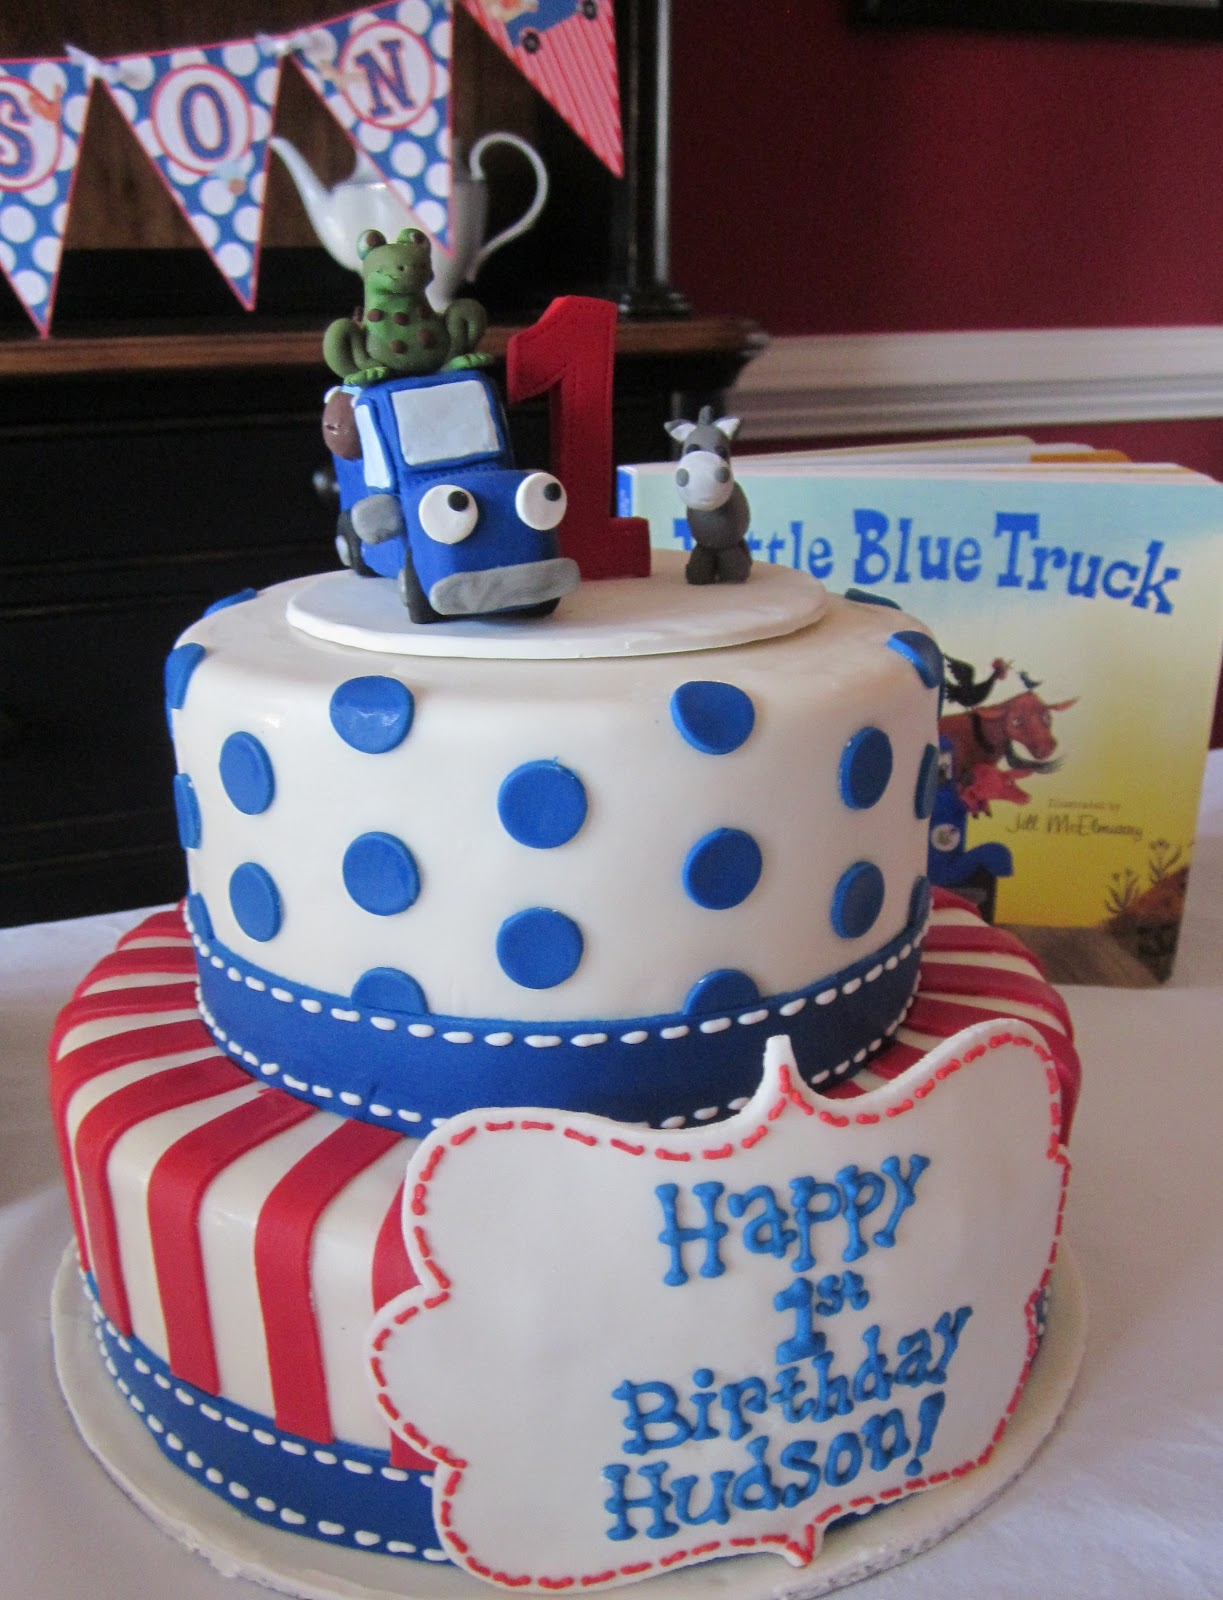 ... for his birthday here are some pics from sweet hudson s birthday bash